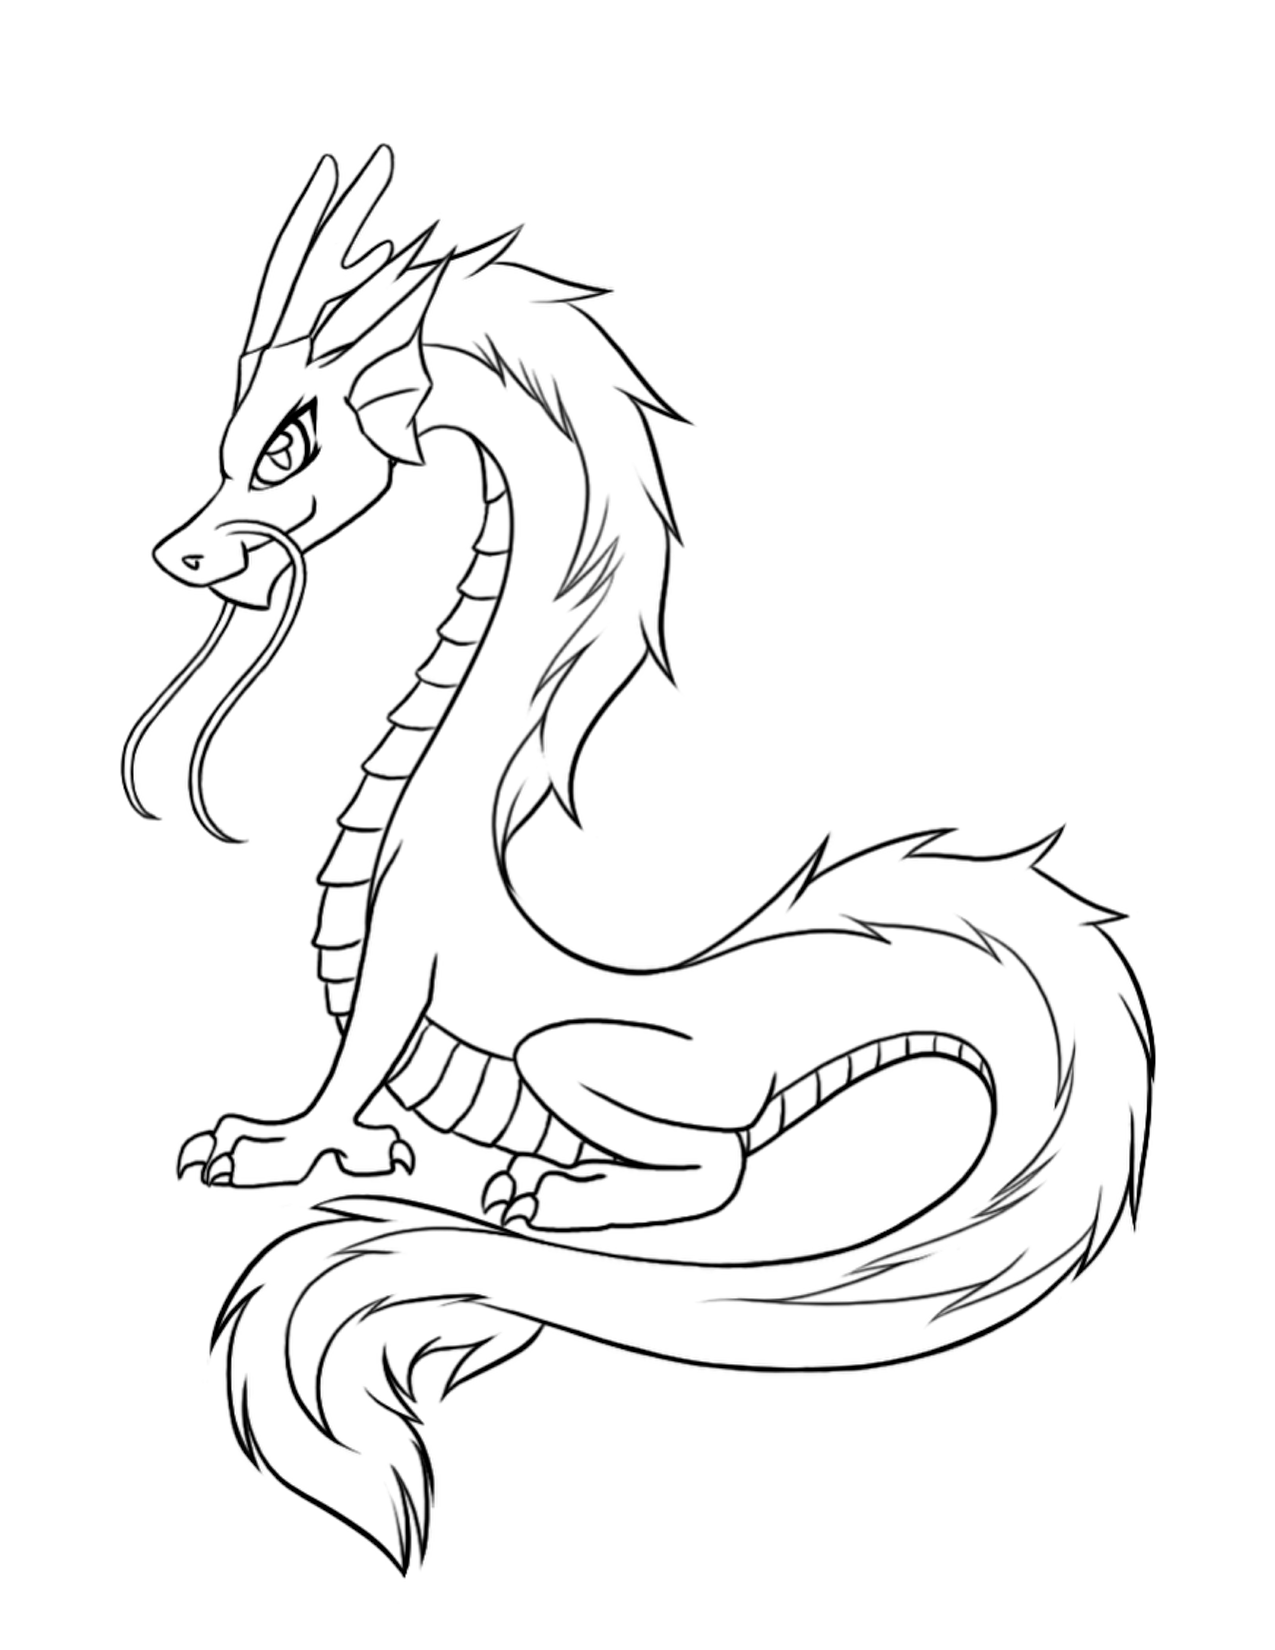 Free Printable Dragon Coloring Pages For Kids Easy